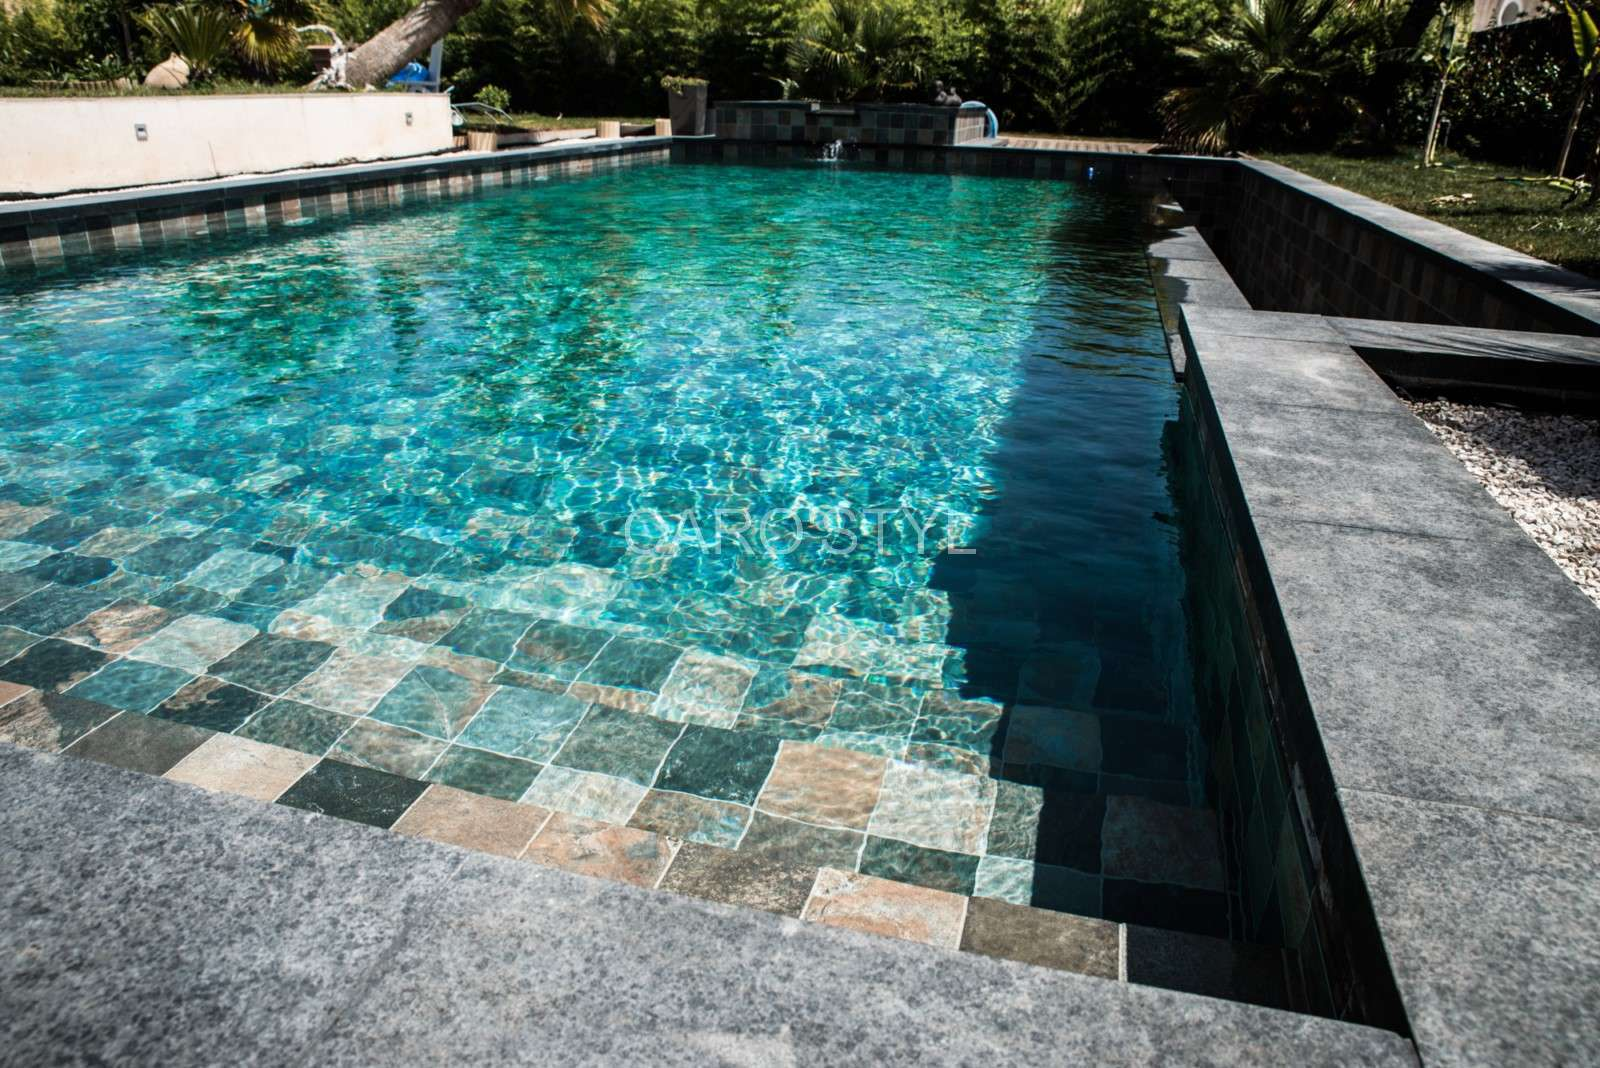 Carrelage piscine bali super d co for Colle carreaux piscine